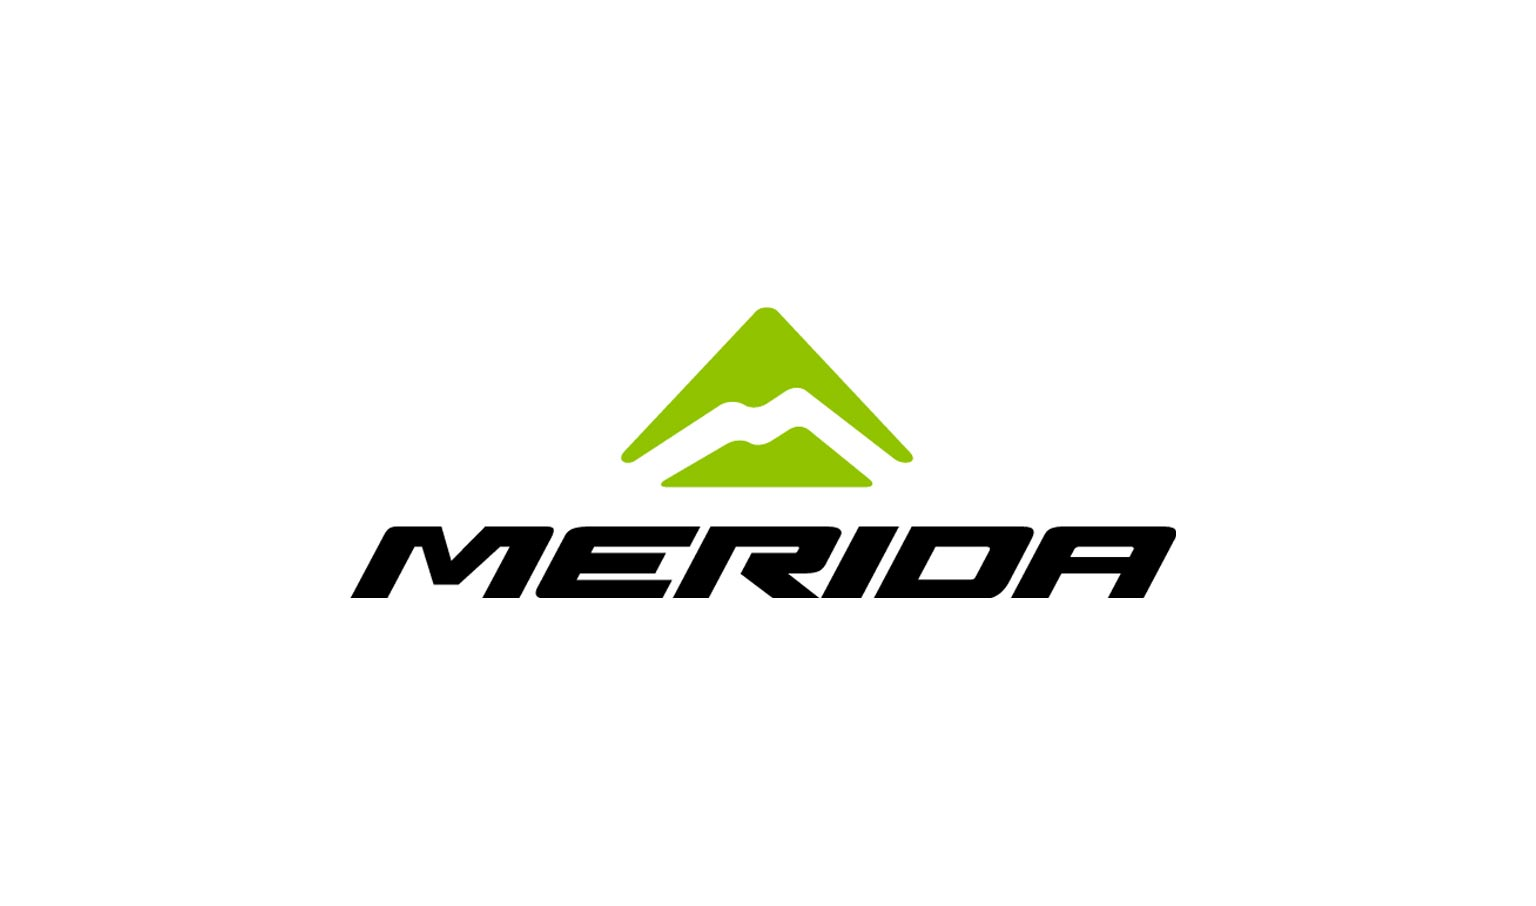 Logotype Merida